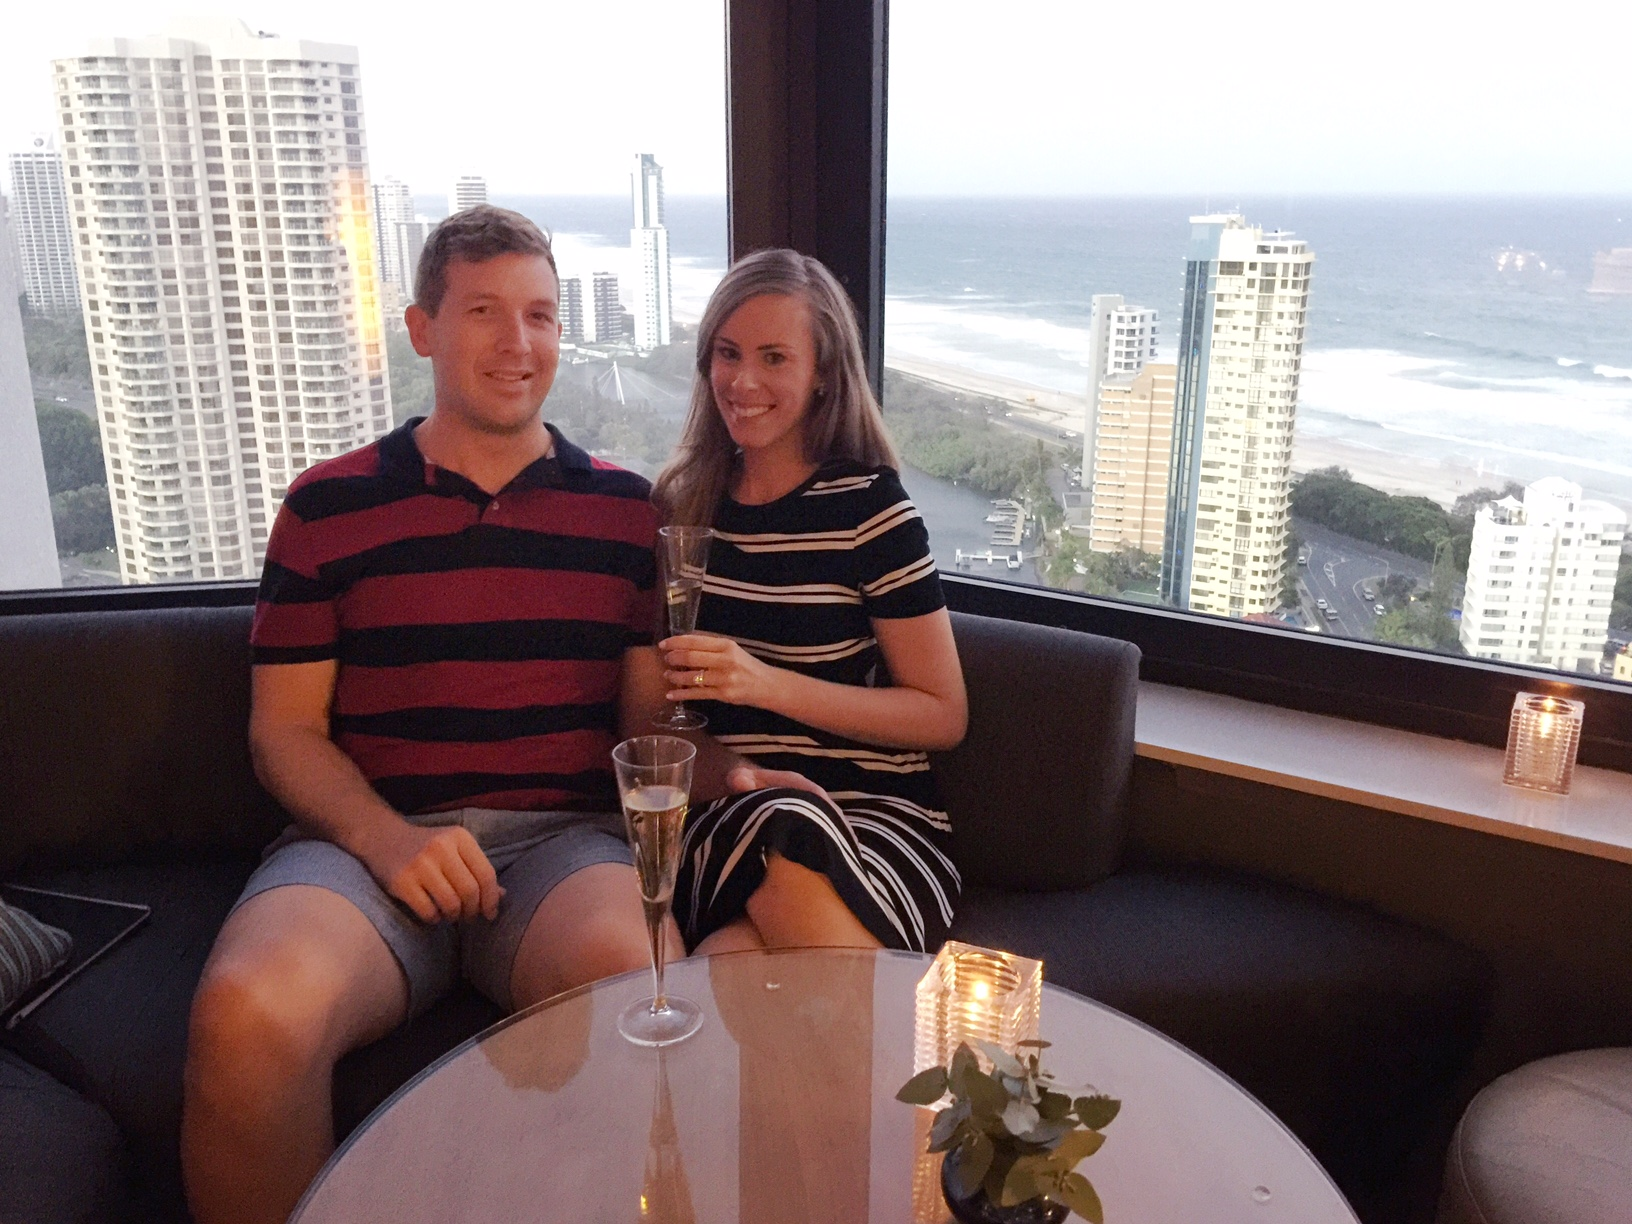 surfers paradise marriott resort and spa gold coast australia beach honeymoon romantic couples holiday luxury vacation hotel review